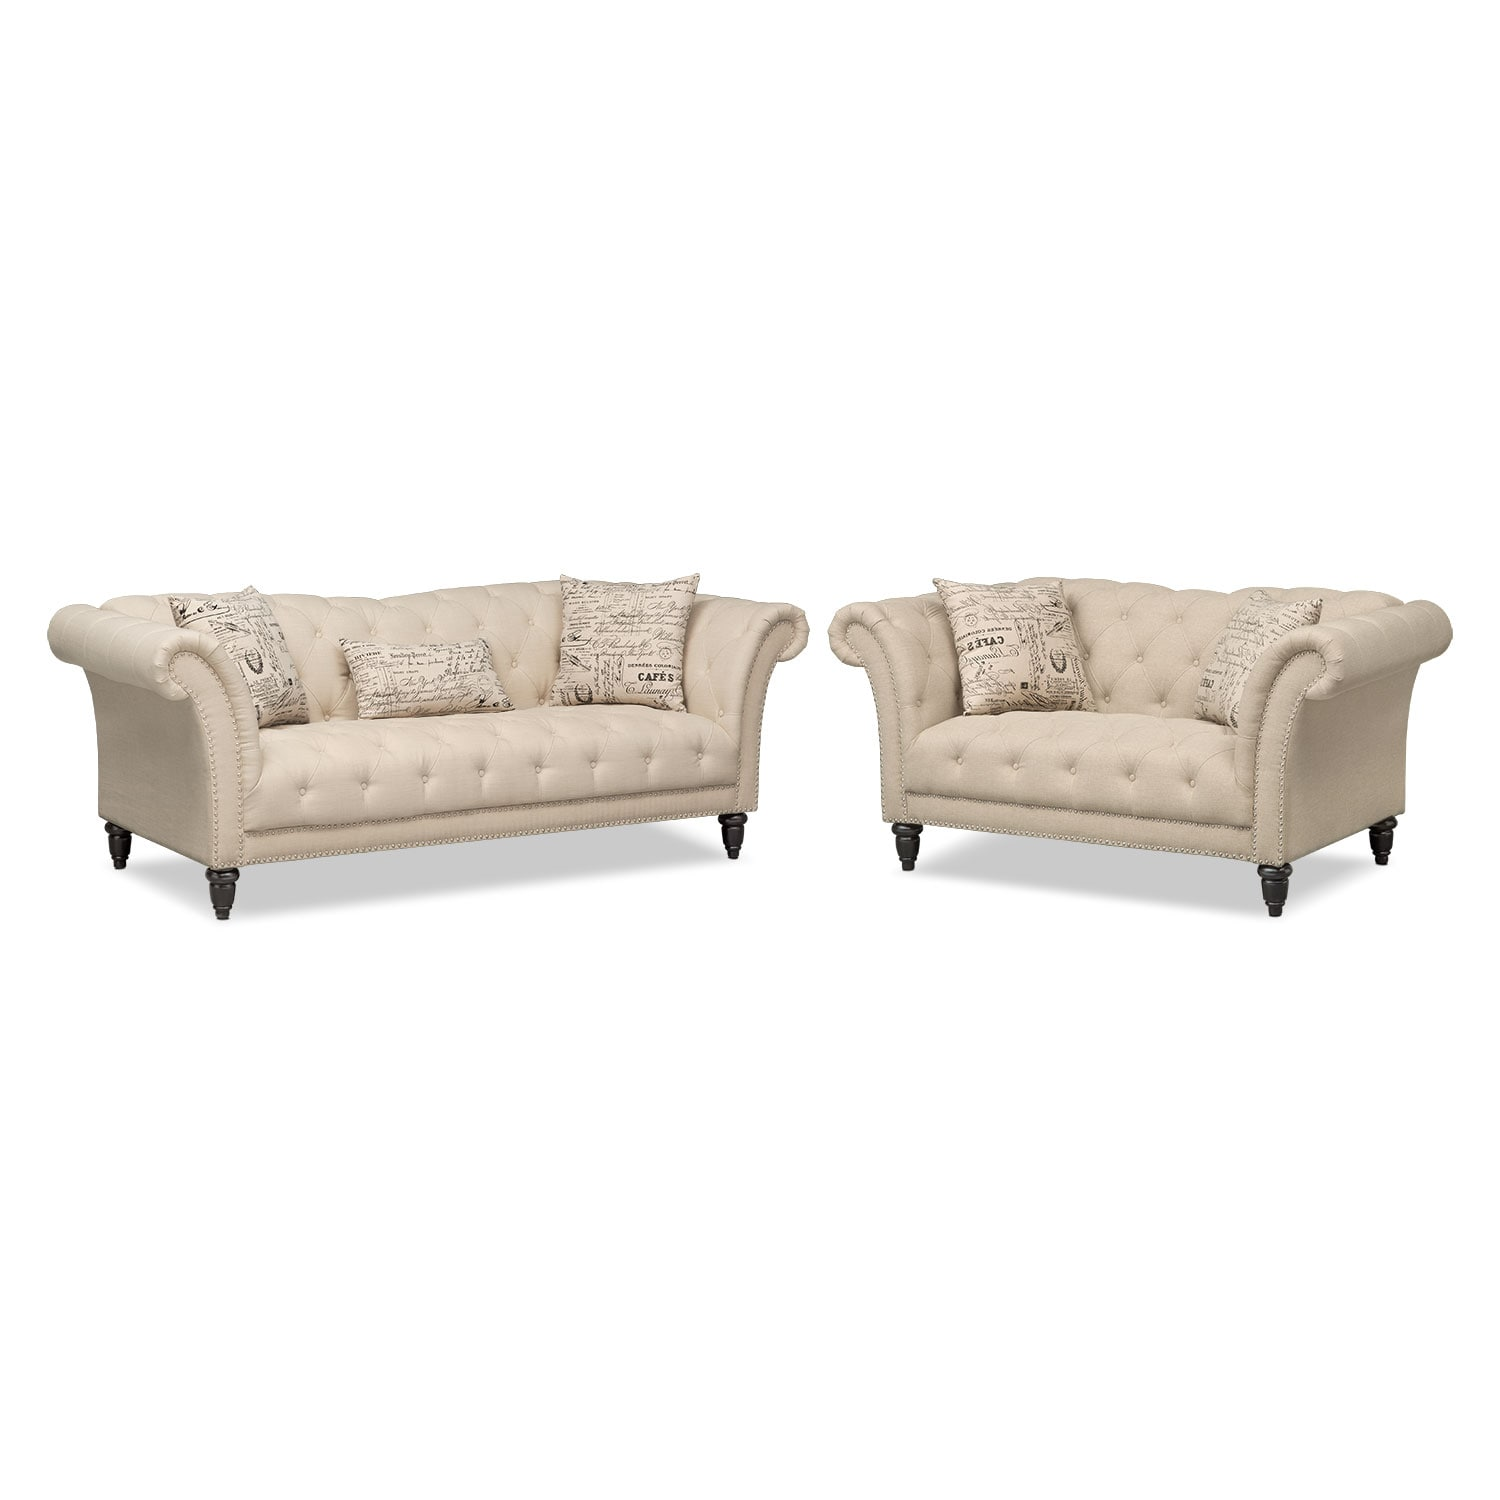 Marisol Sofa and Loveseat - Beige